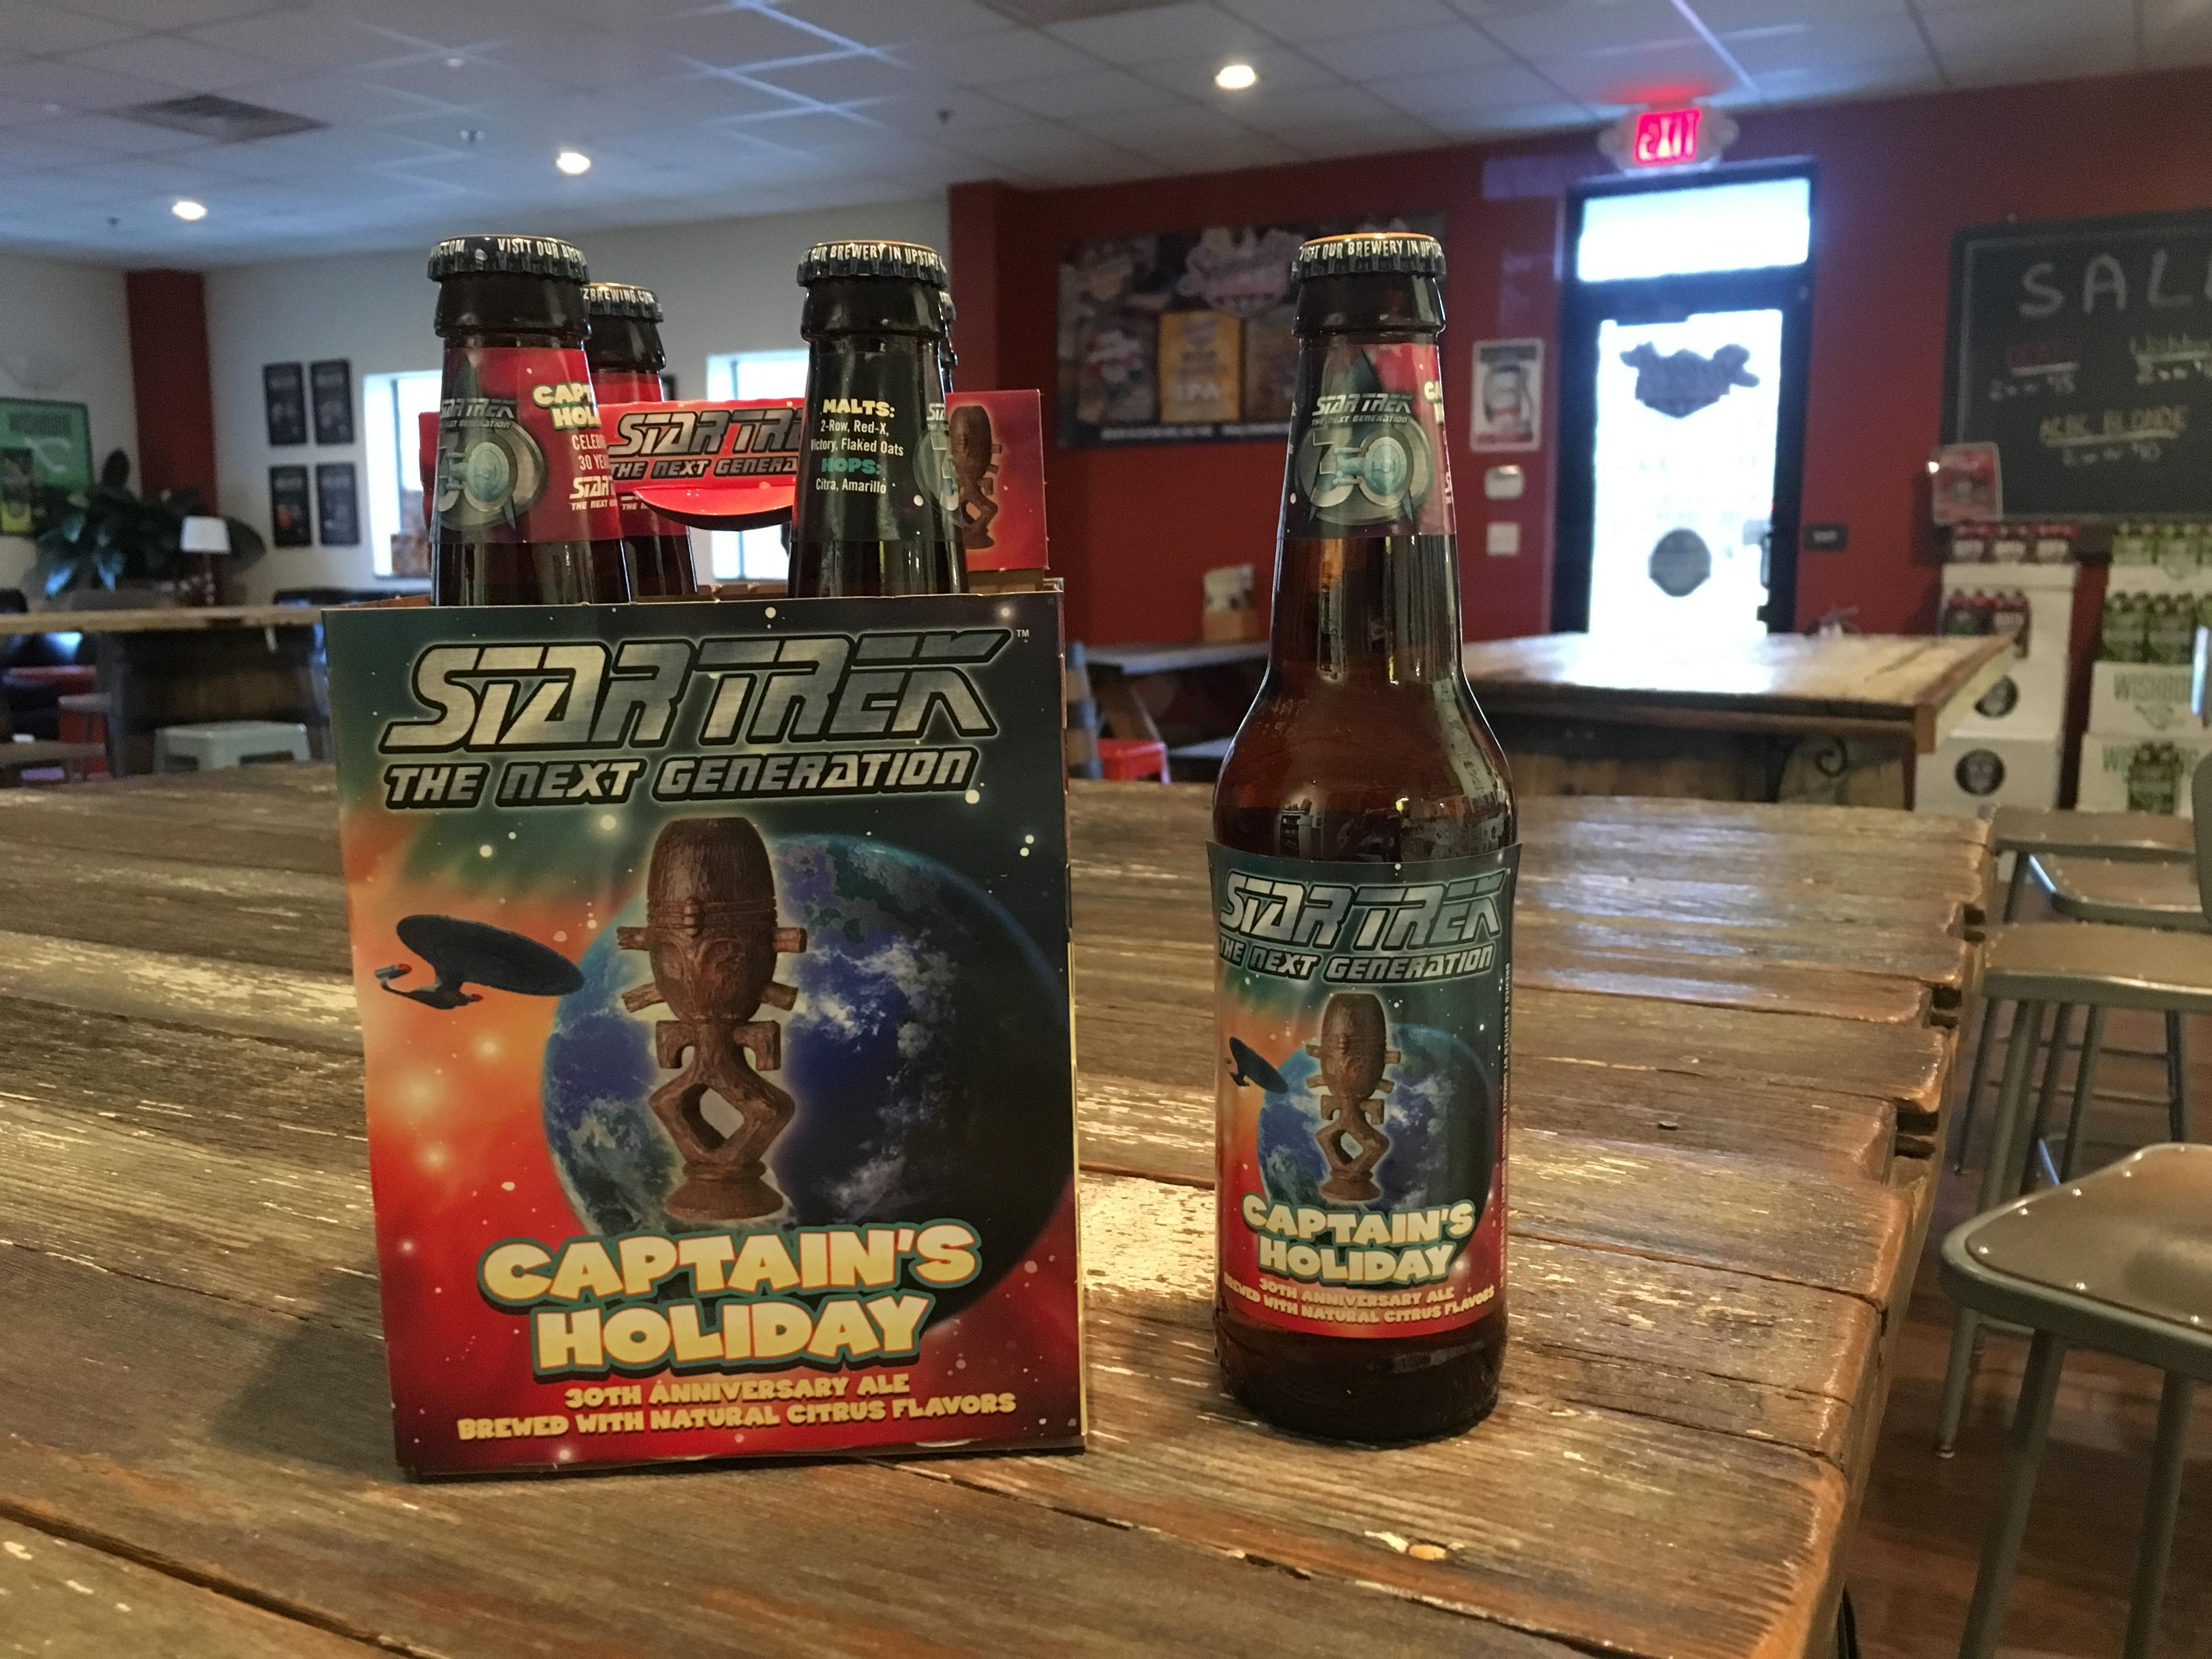 captains-holiday-beer-shmaltz-brewing-company